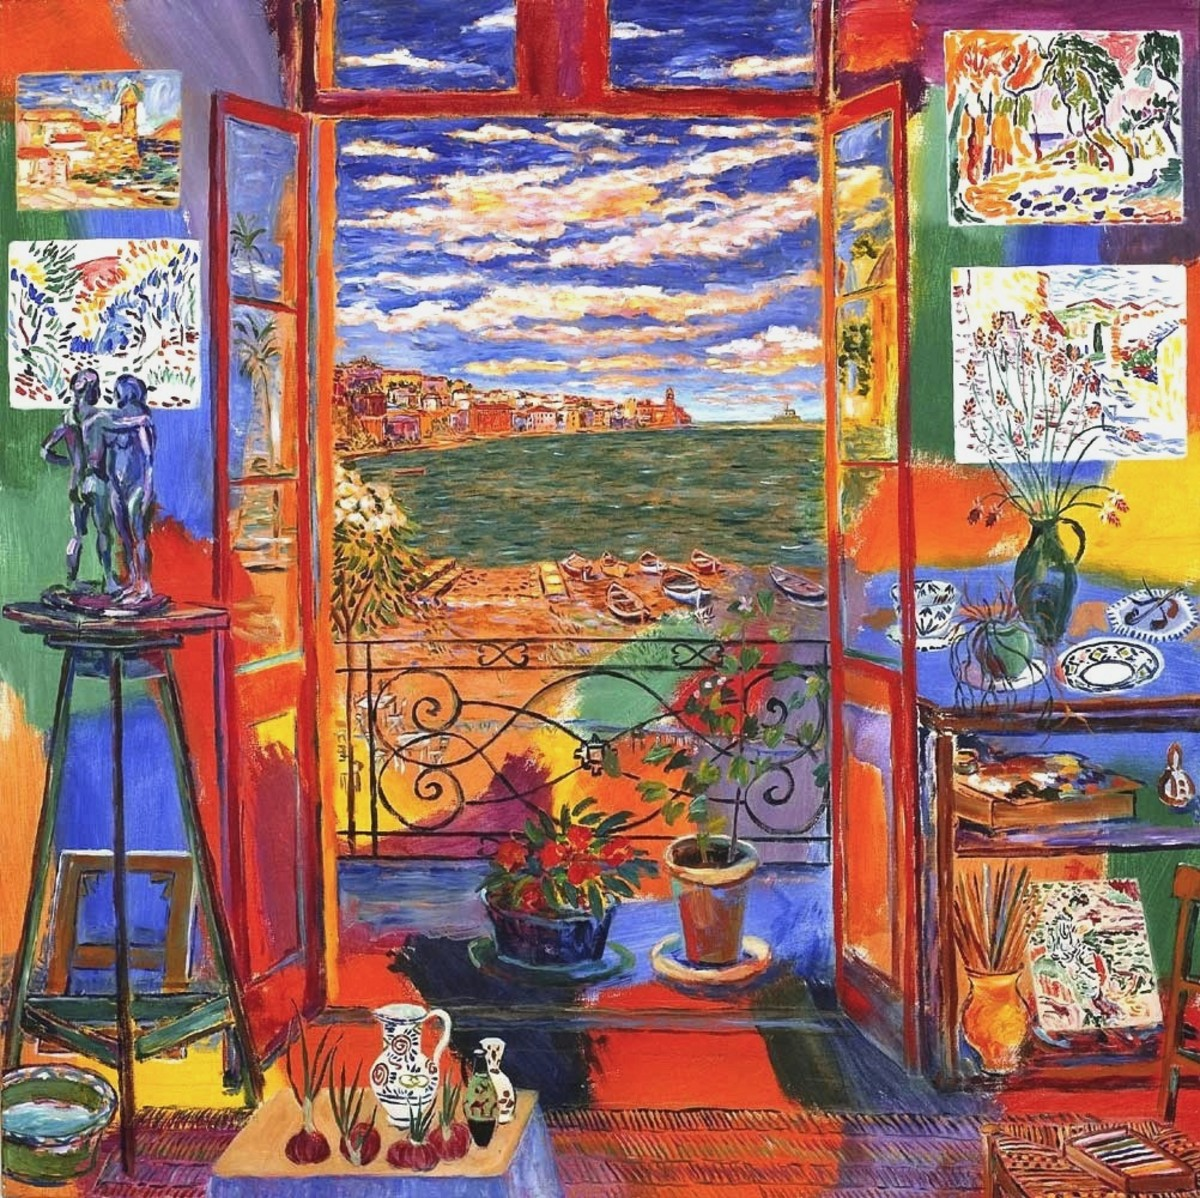 Matisse's Studio (Collioure, 1905) by Damian Elwes,